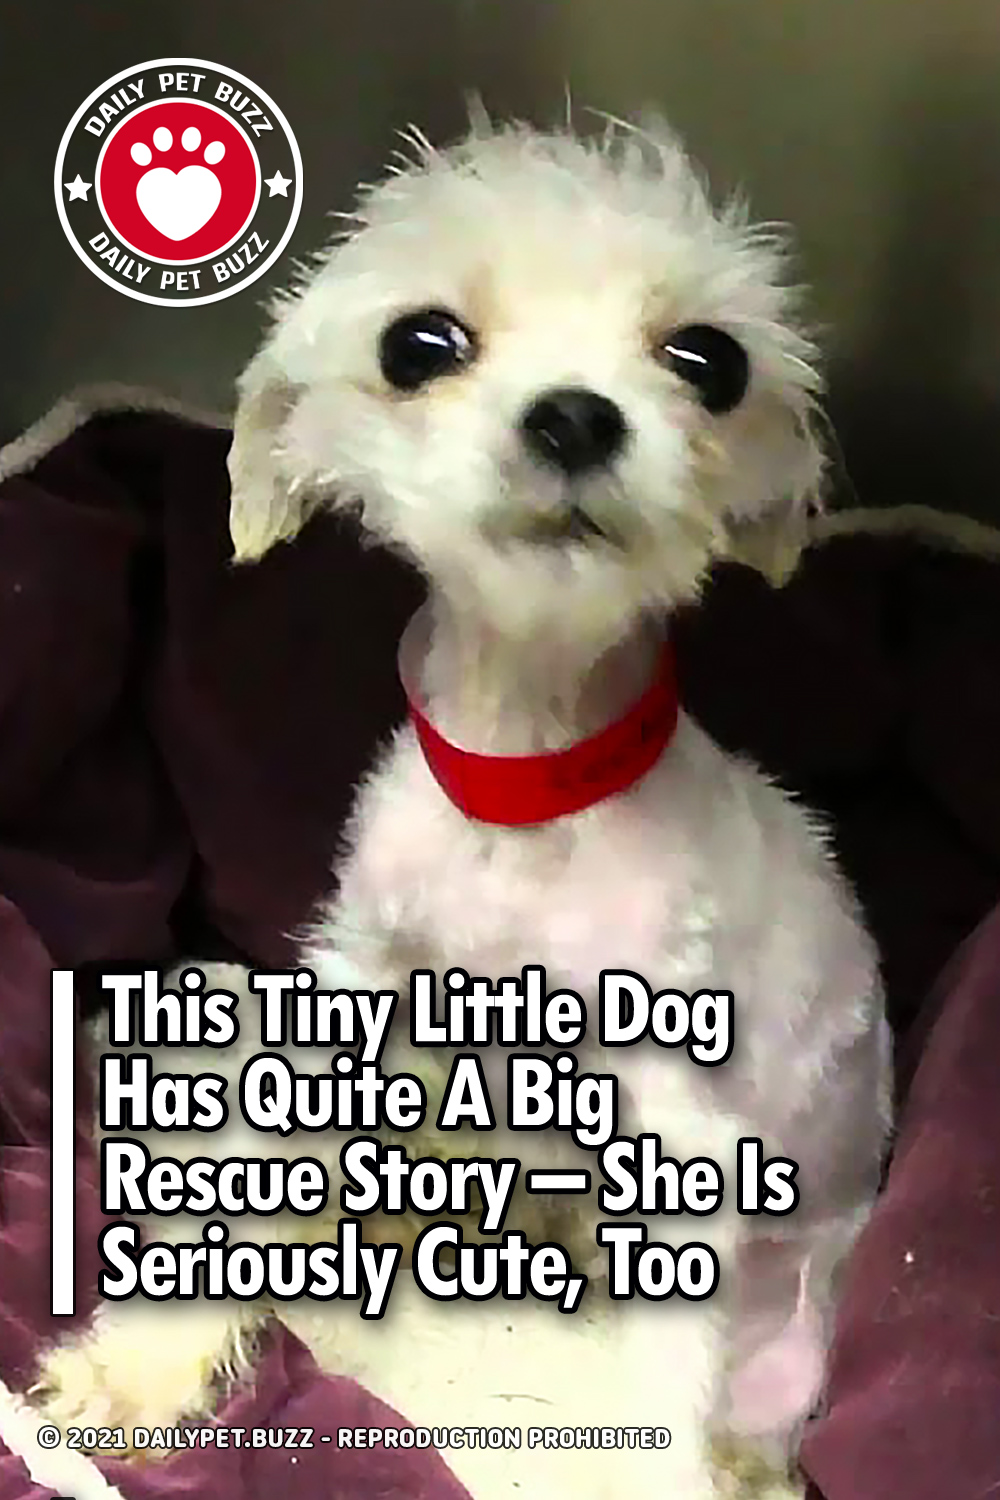 This Tiny Little Dog Has Quite A Big Rescue Story – She Is Seriously Cute, Too